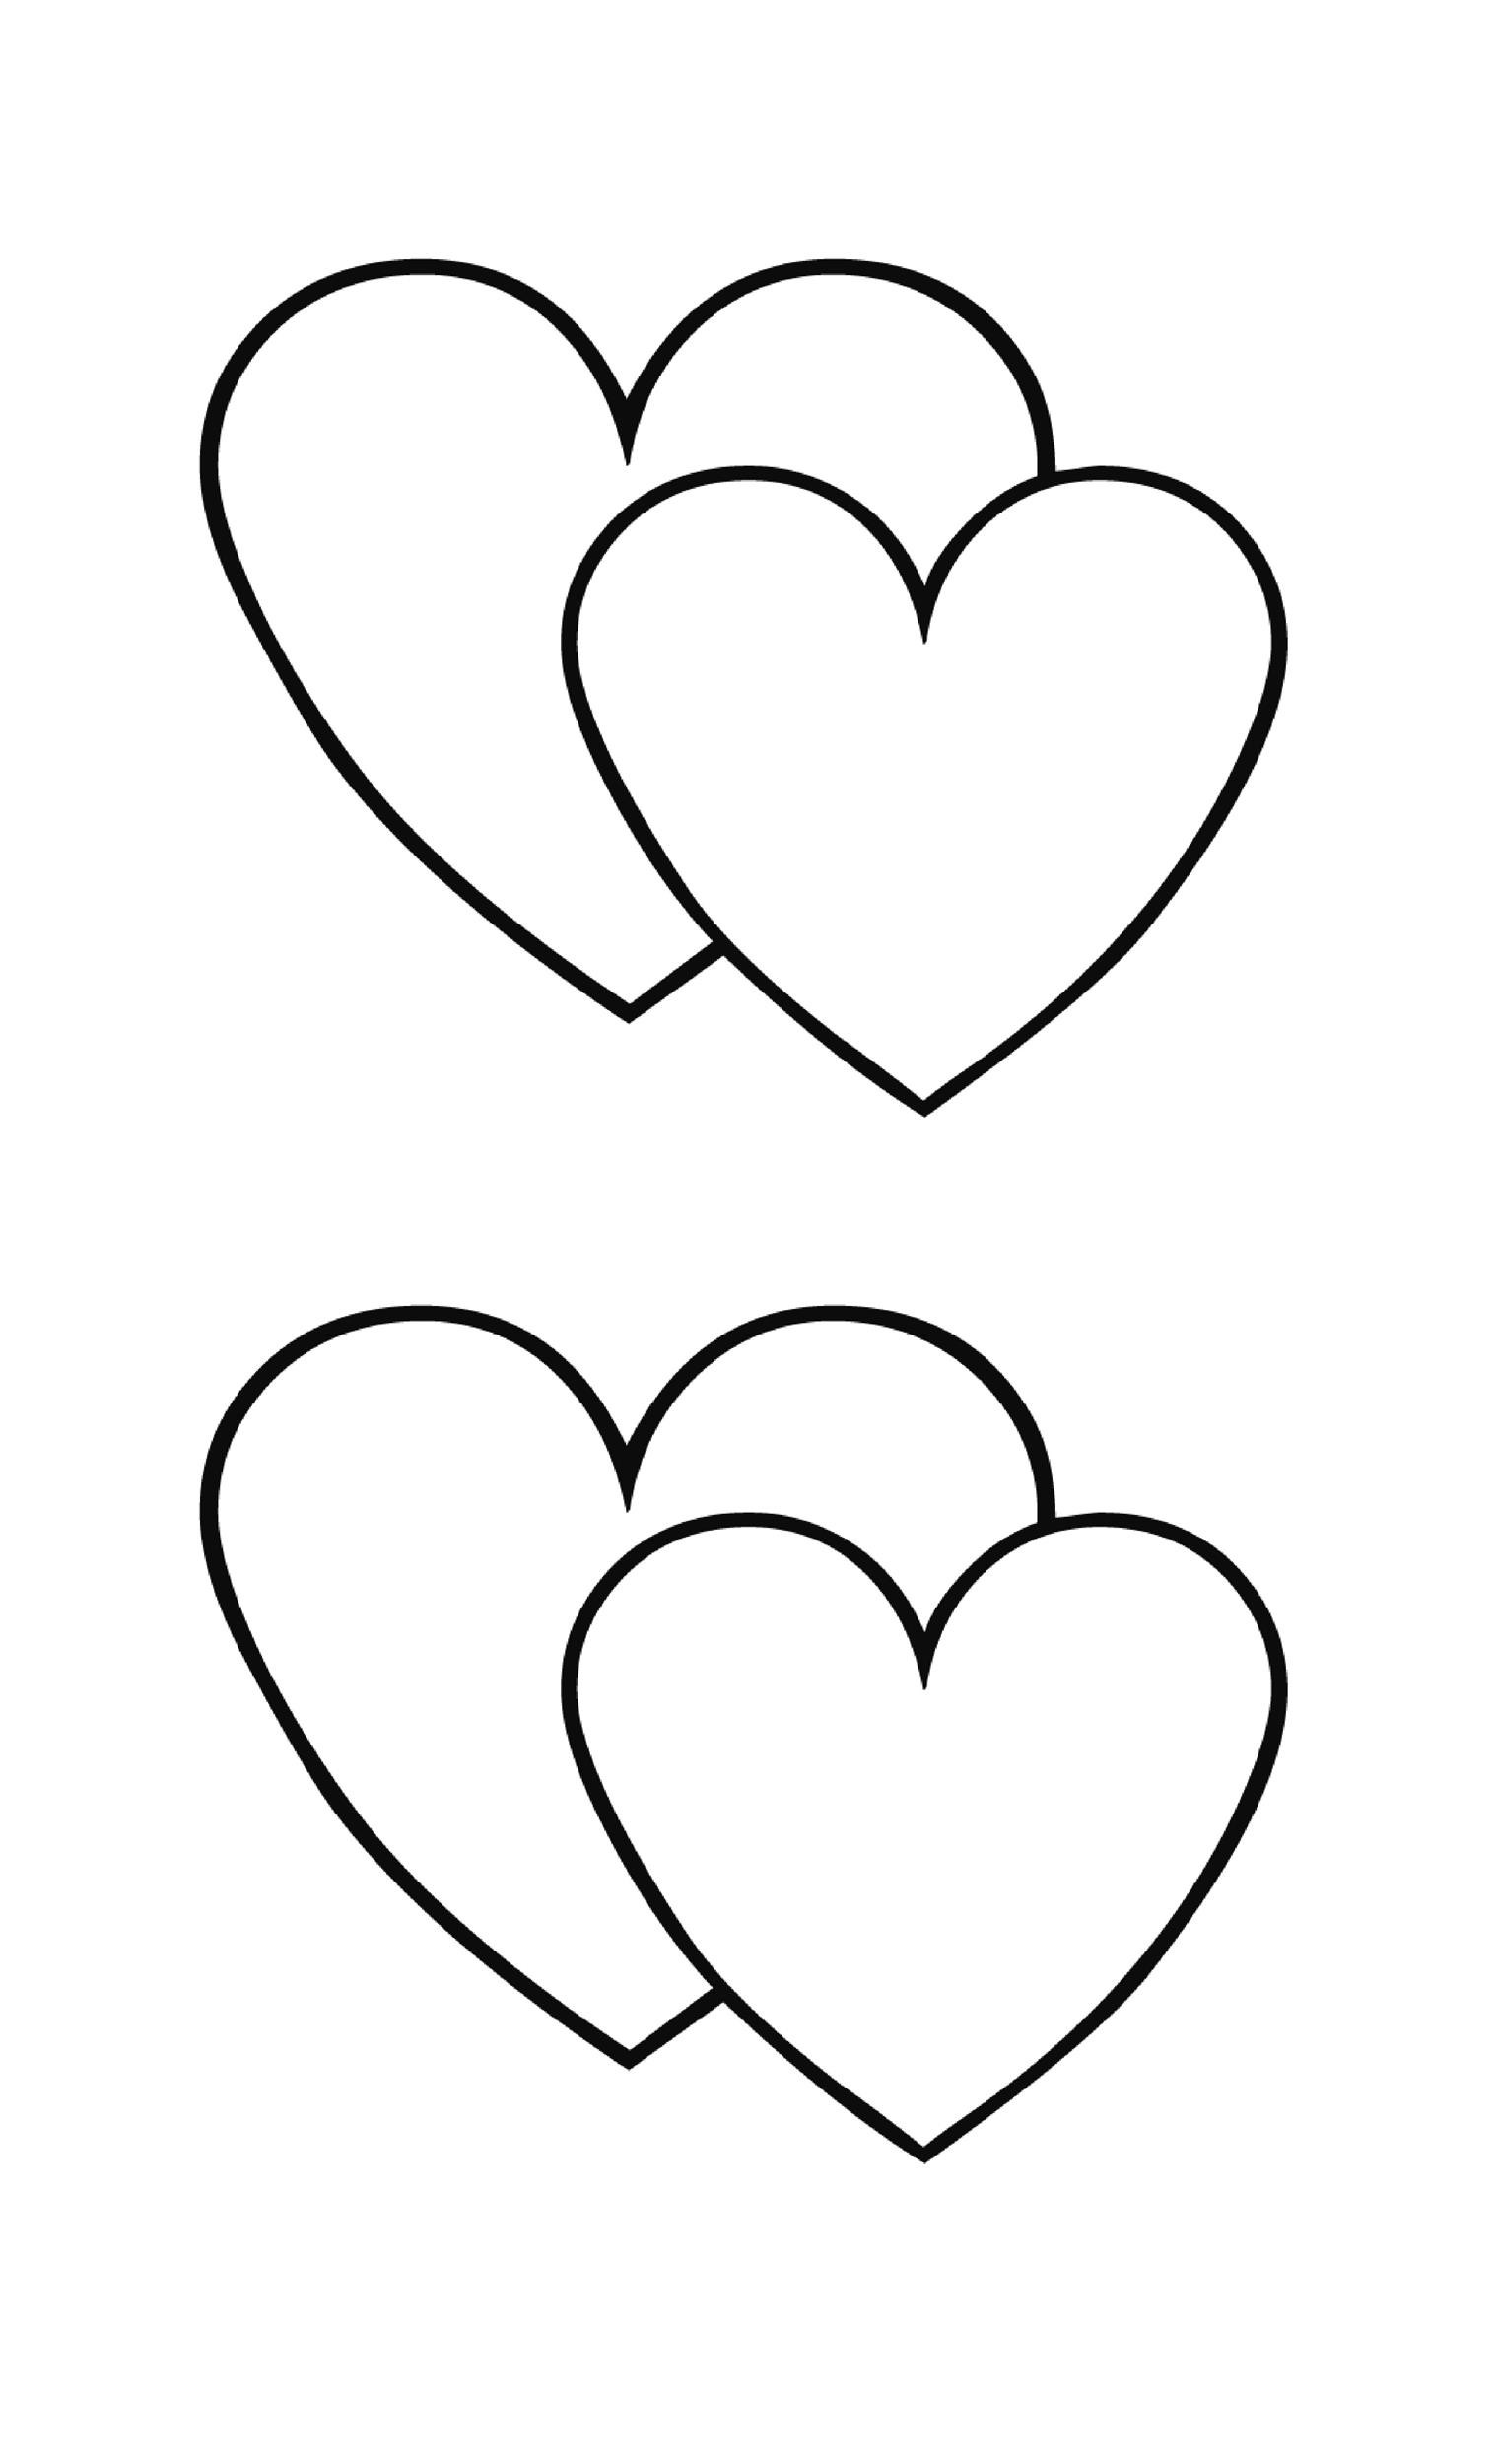 photograph regarding Free Printable Heart Template referred to as 40 Printable Middle Templates 15 Intake Illustrations